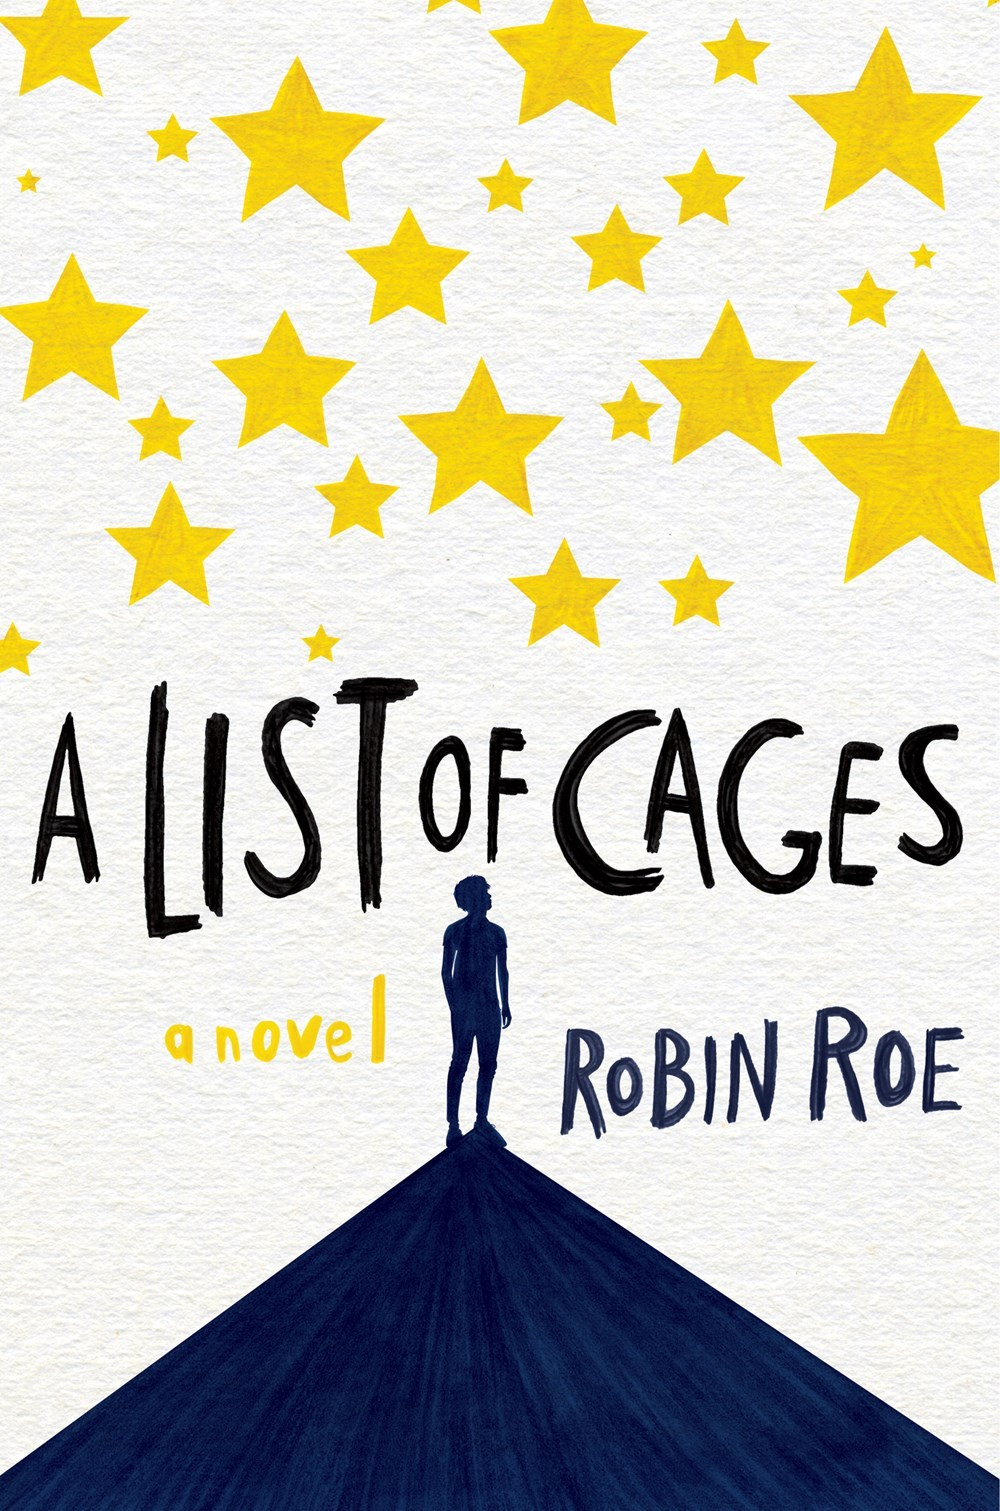 Robin Roe List of Cages